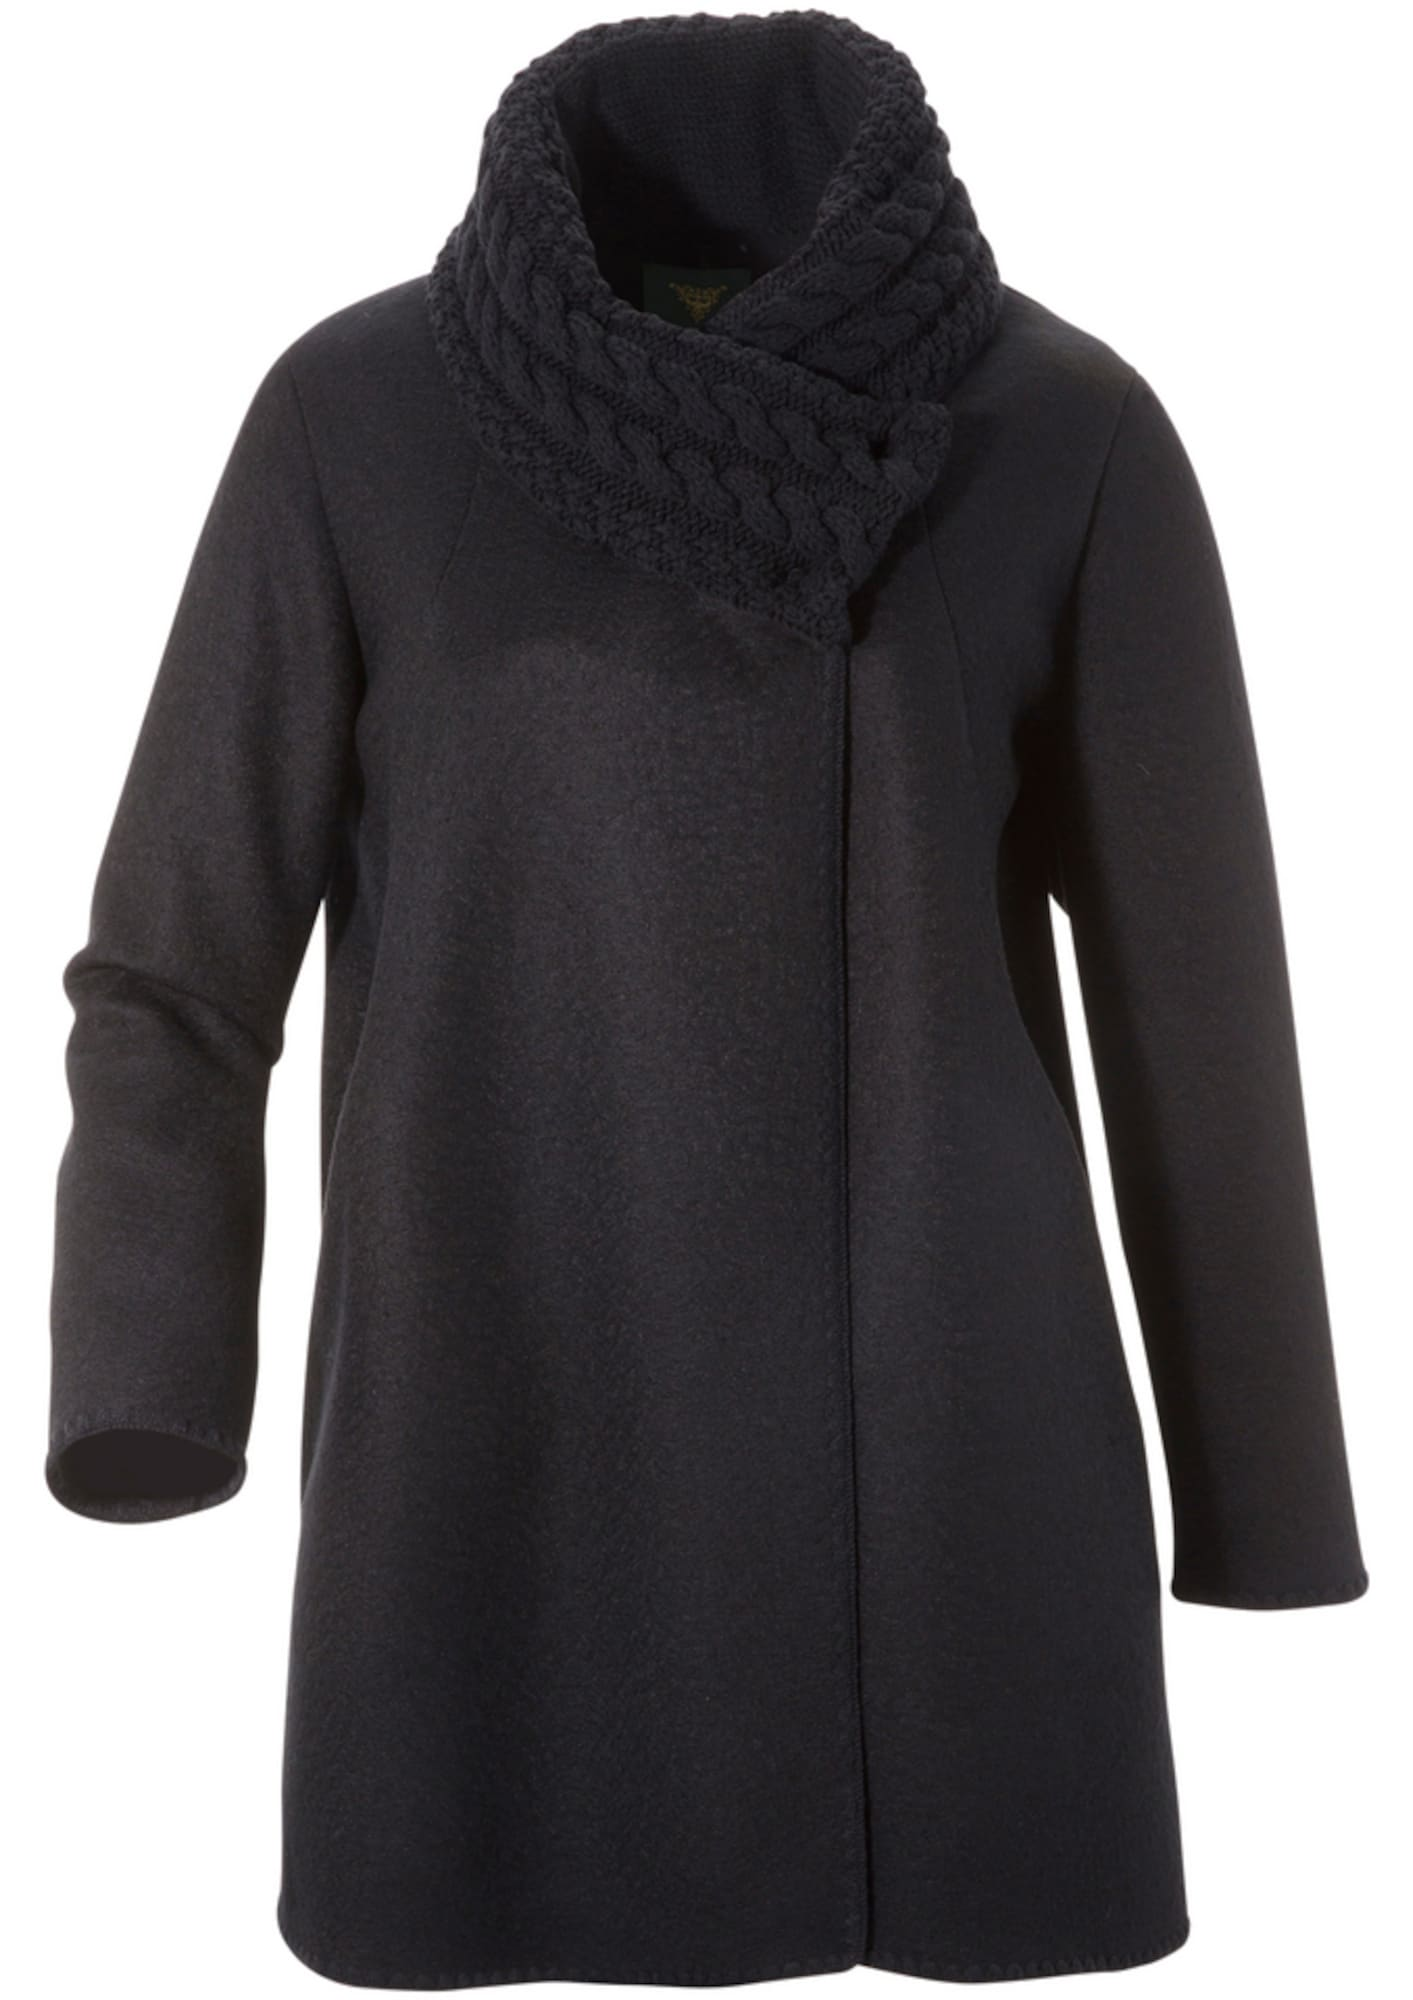 Trachtenponcho | Bekleidung > Pullover > Ponchos & Capes | H.Moser